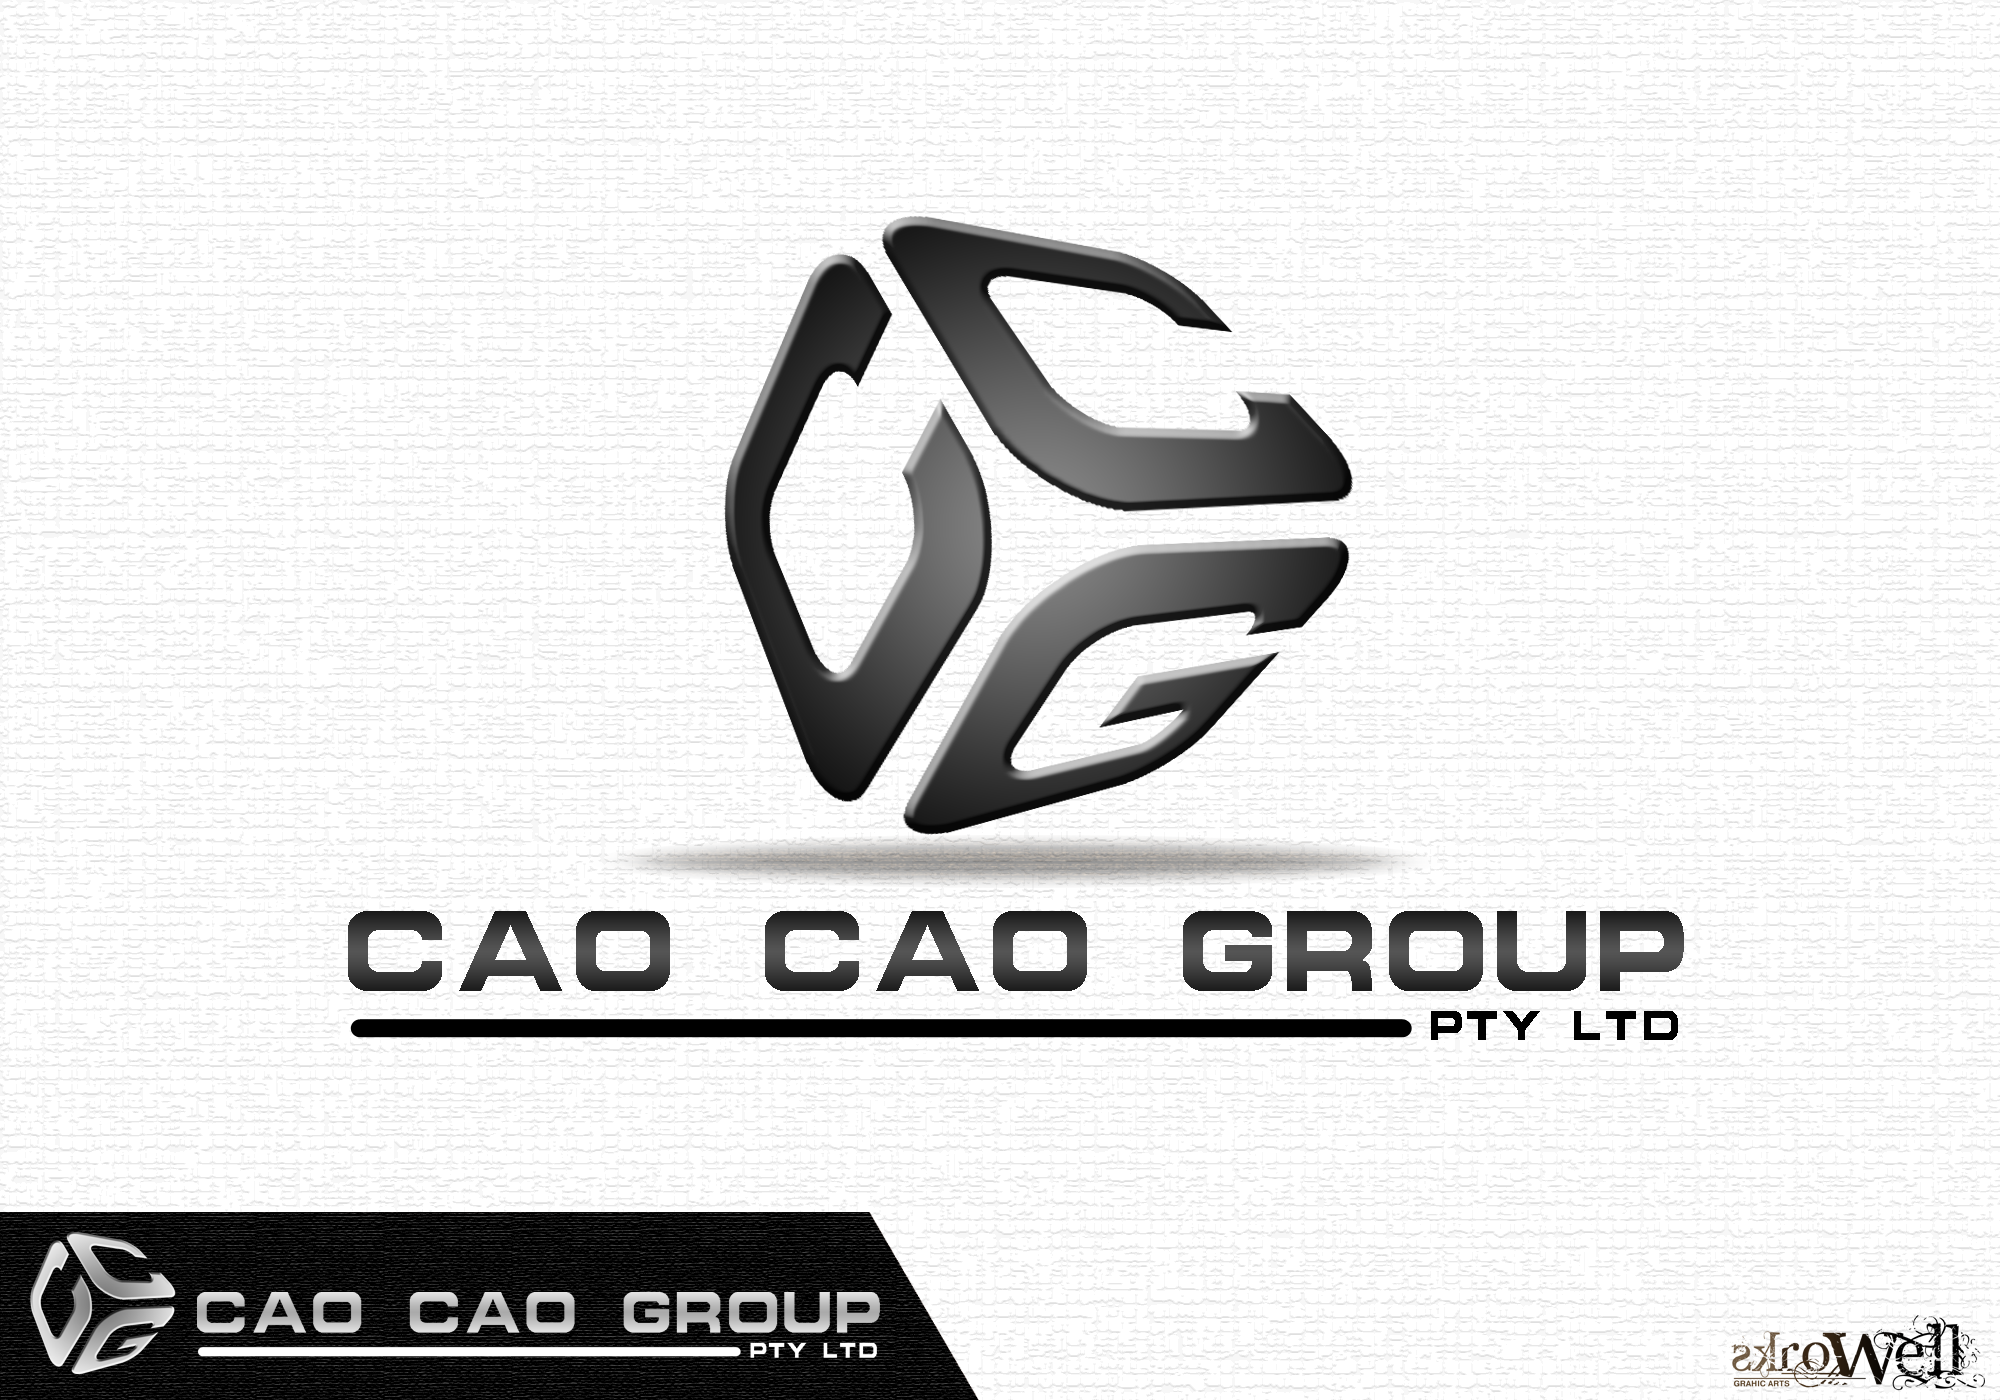 Logo Design by Rowell - Entry No. 112 in the Logo Design Contest cao cao group pty ltd Logo Design.